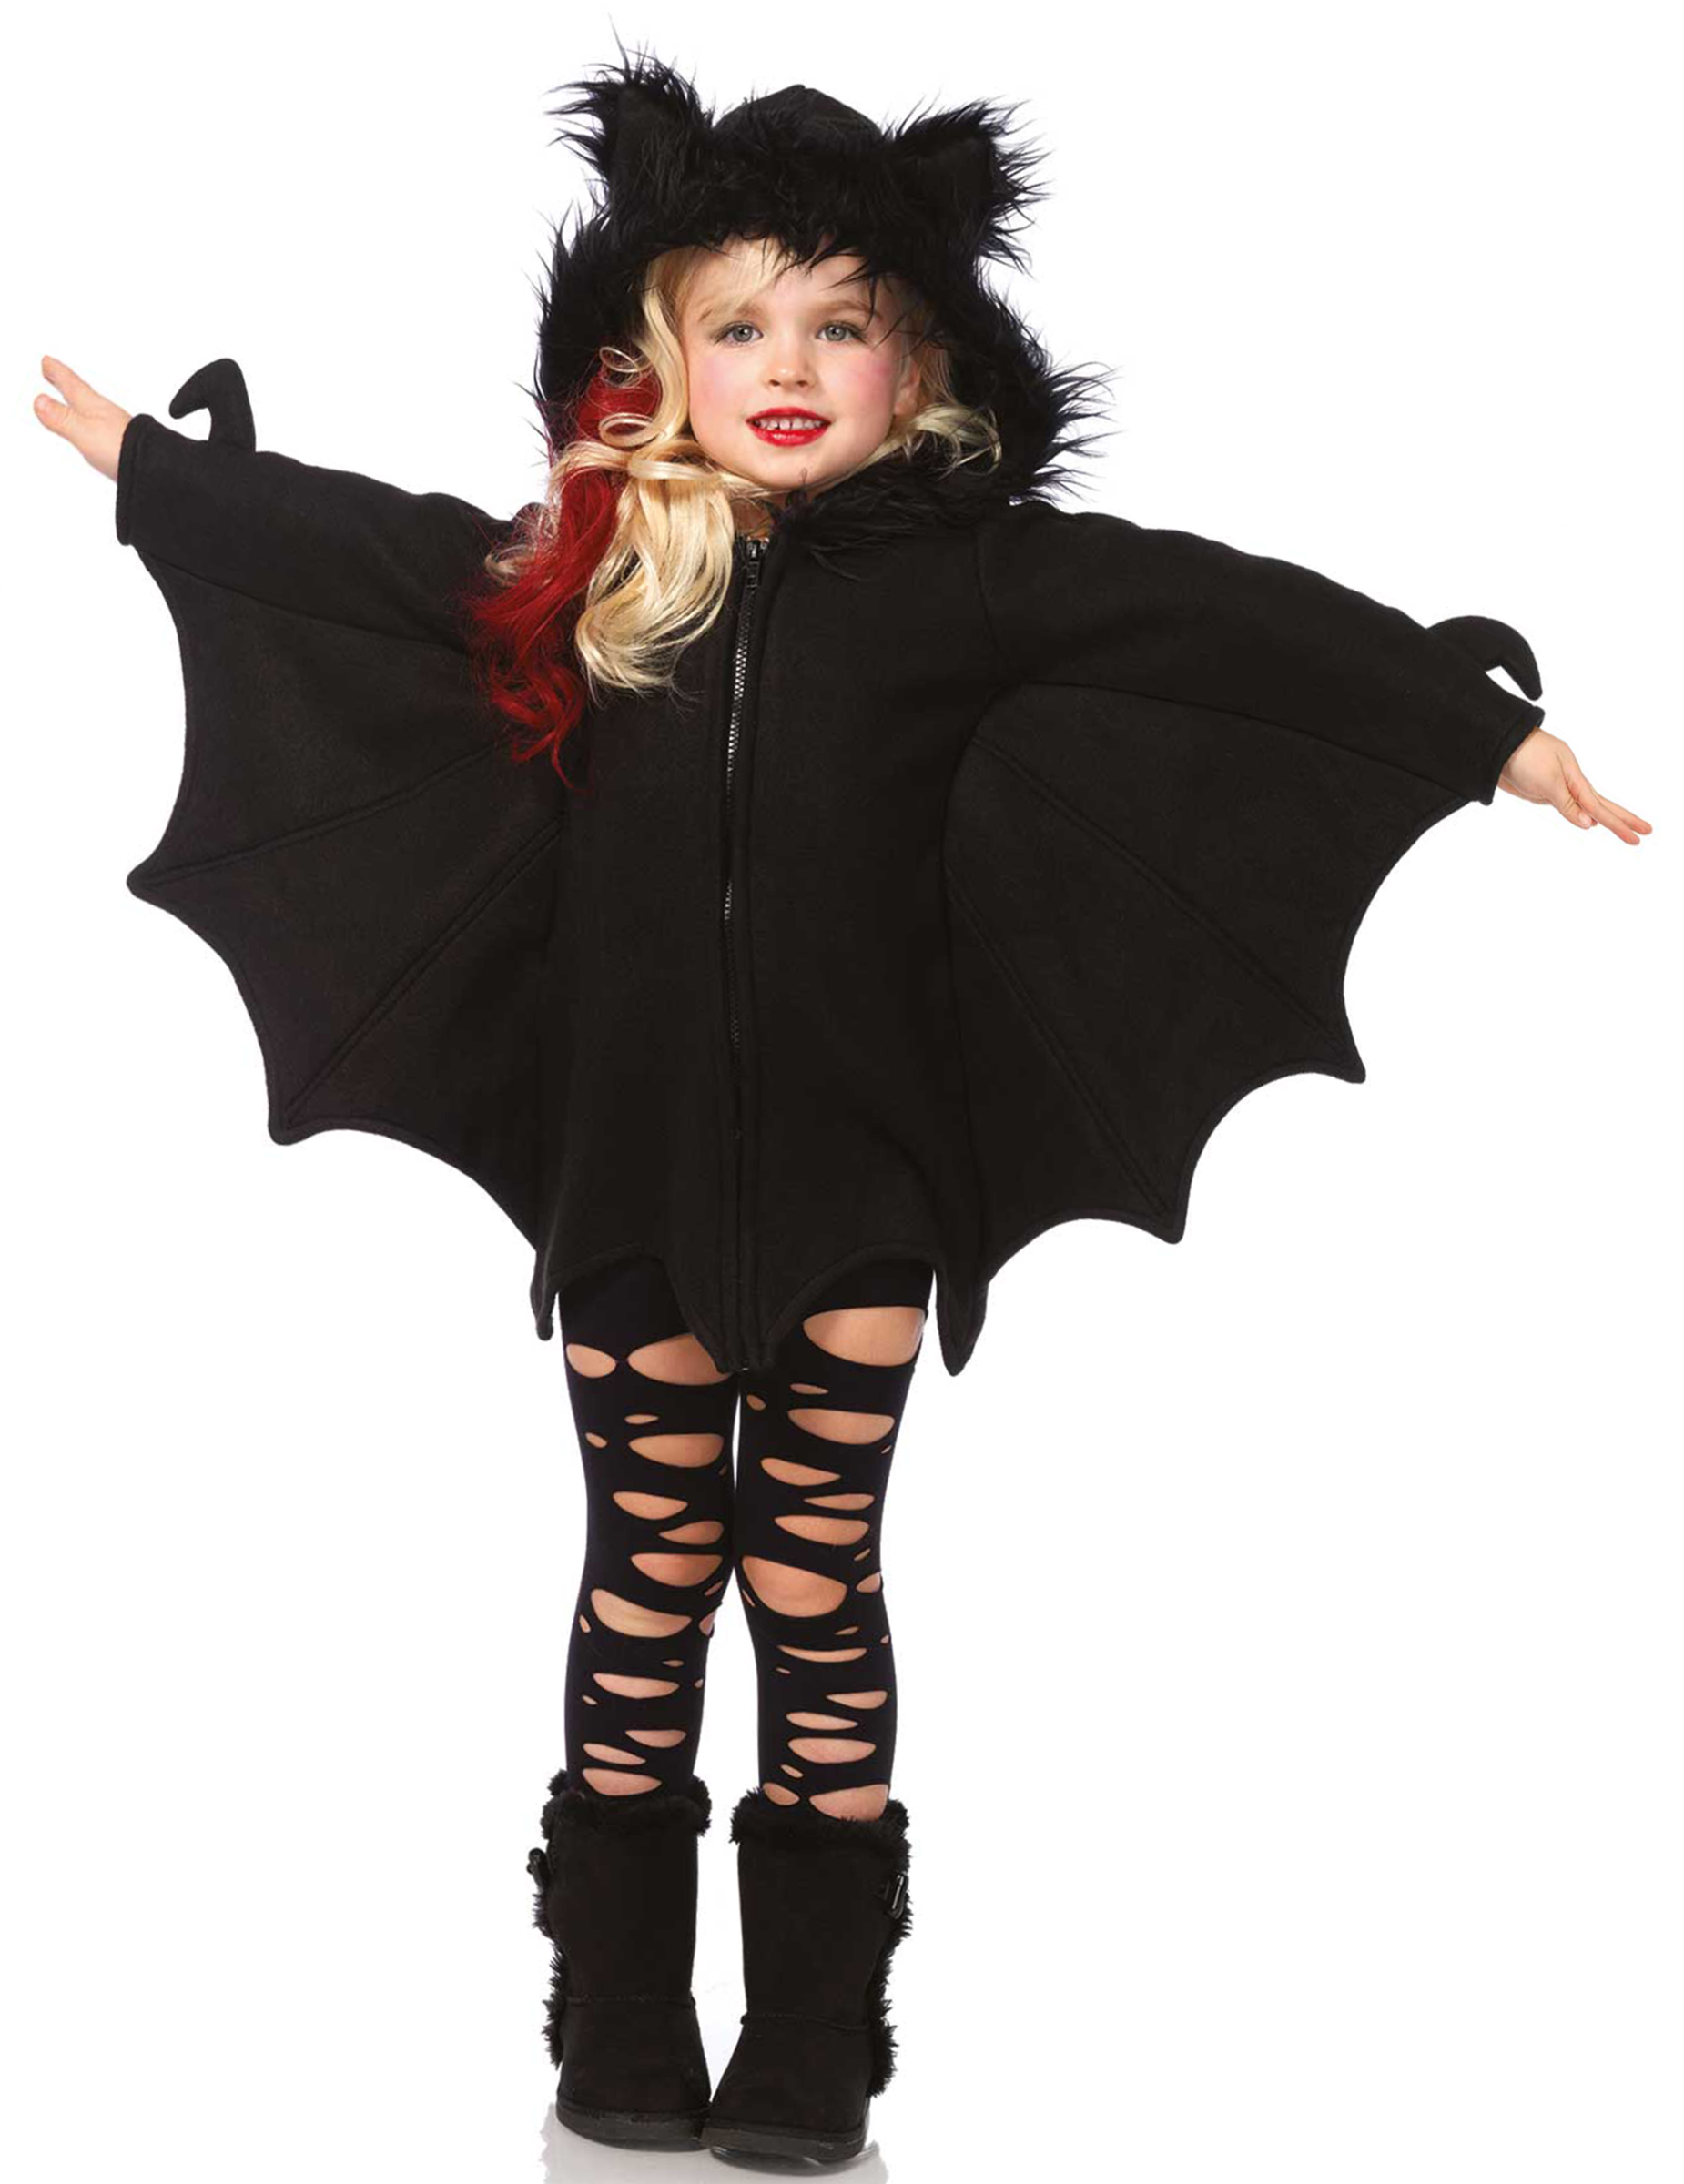 Scary Halloween Costumes For 11 Year Olds